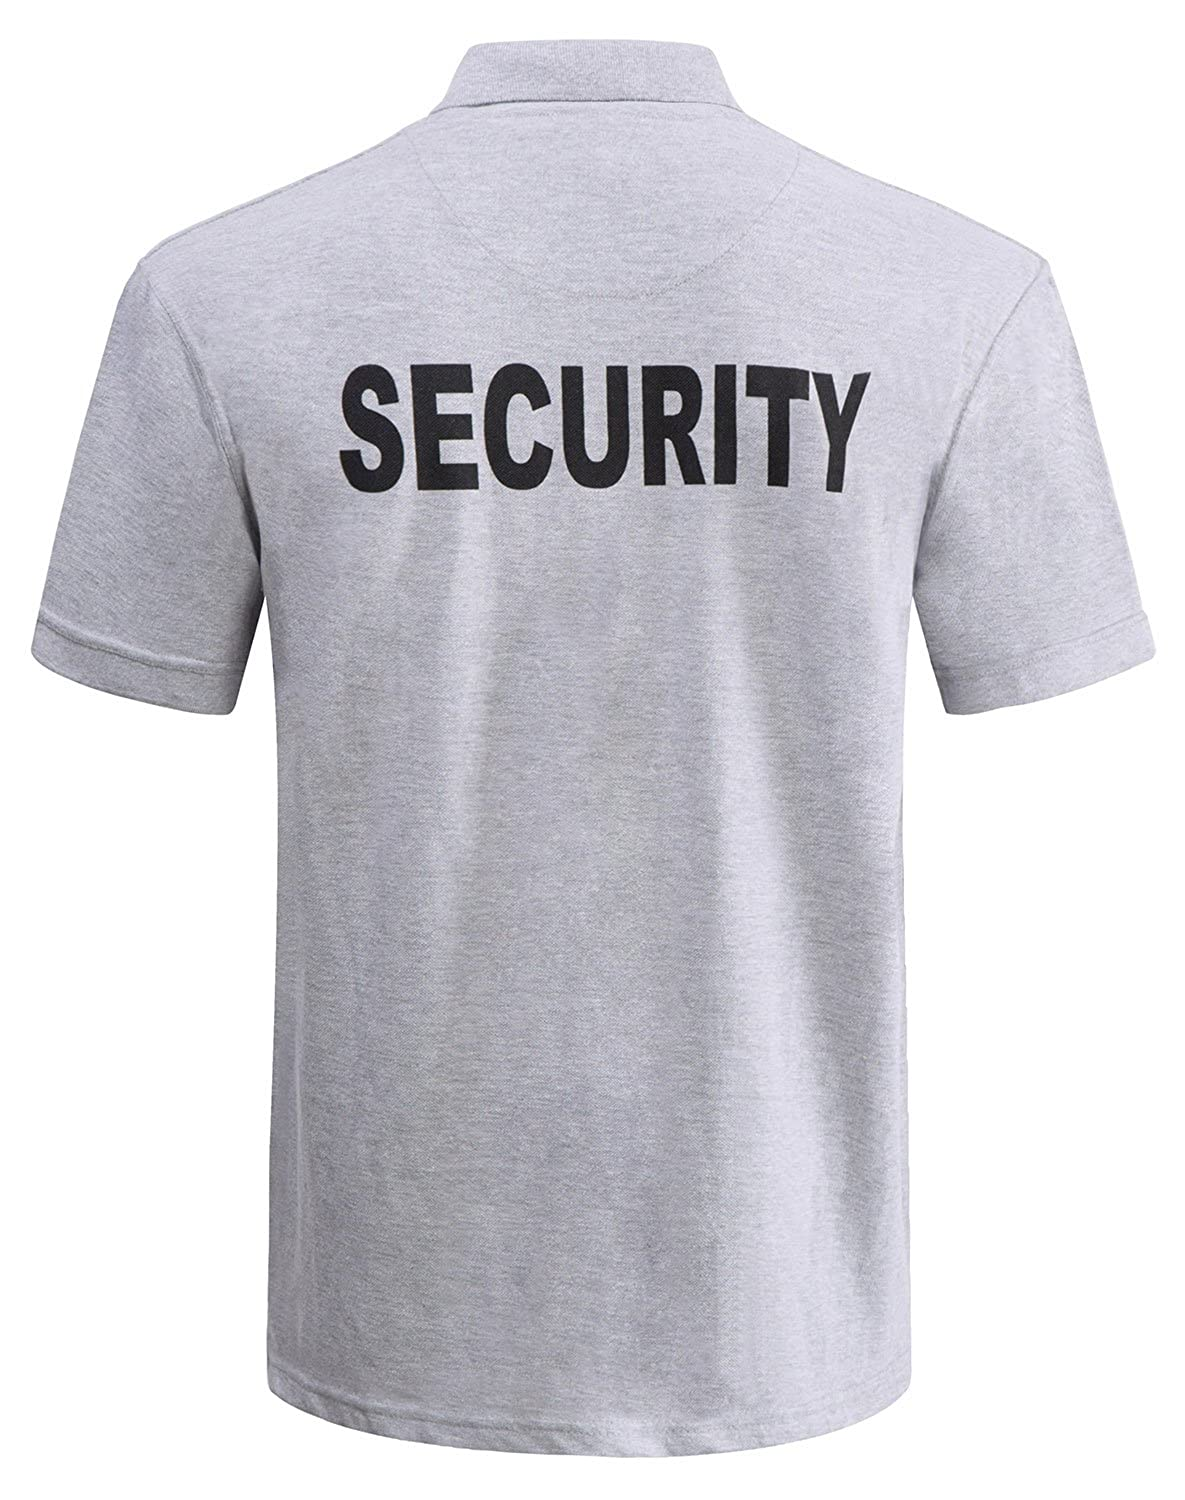 55a59e54 Security Polo Shirts | RLDM